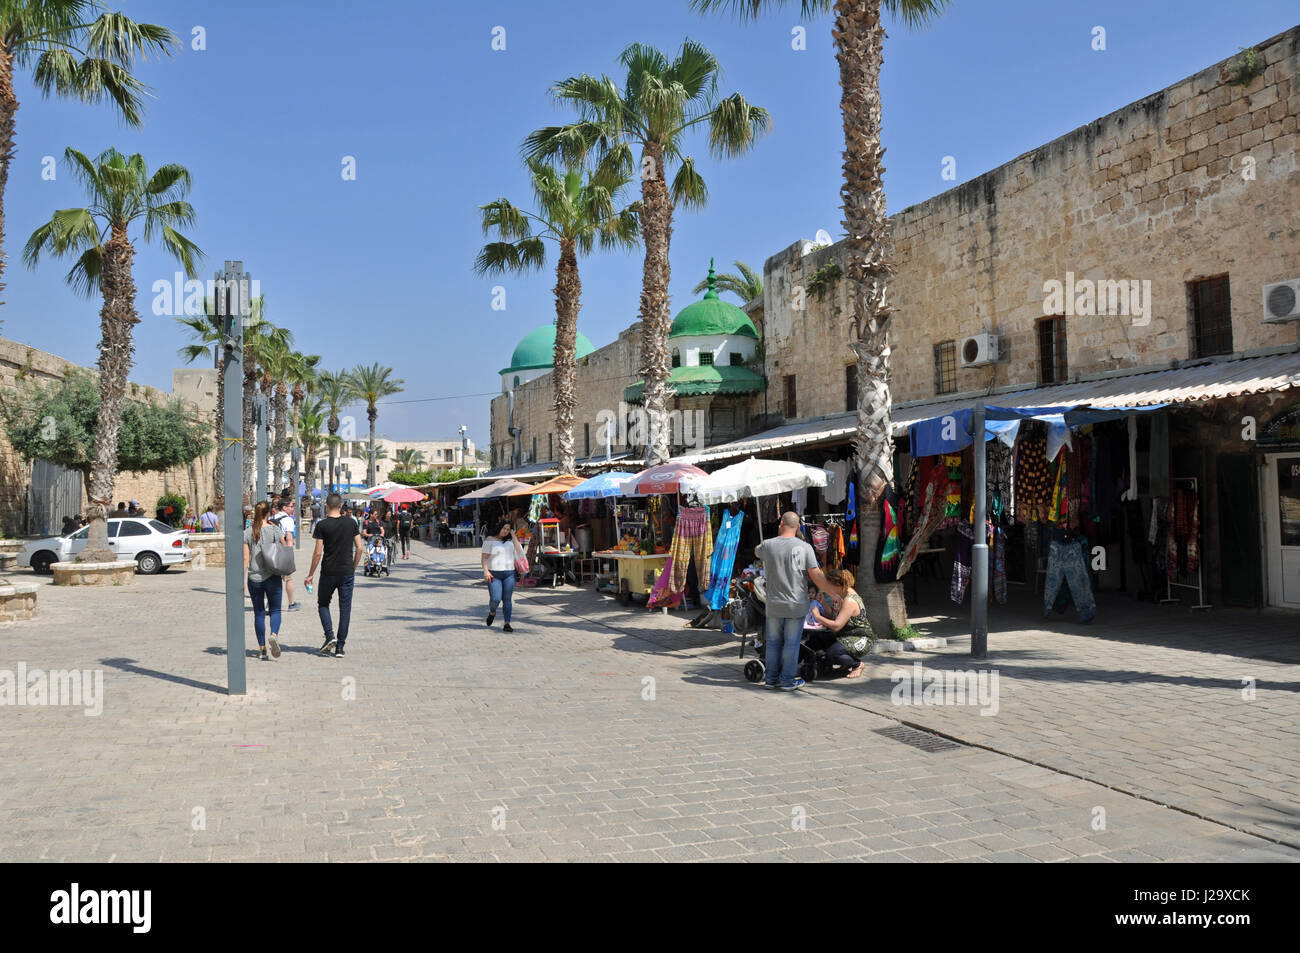 The city of Acre, Israel. - Stock Image